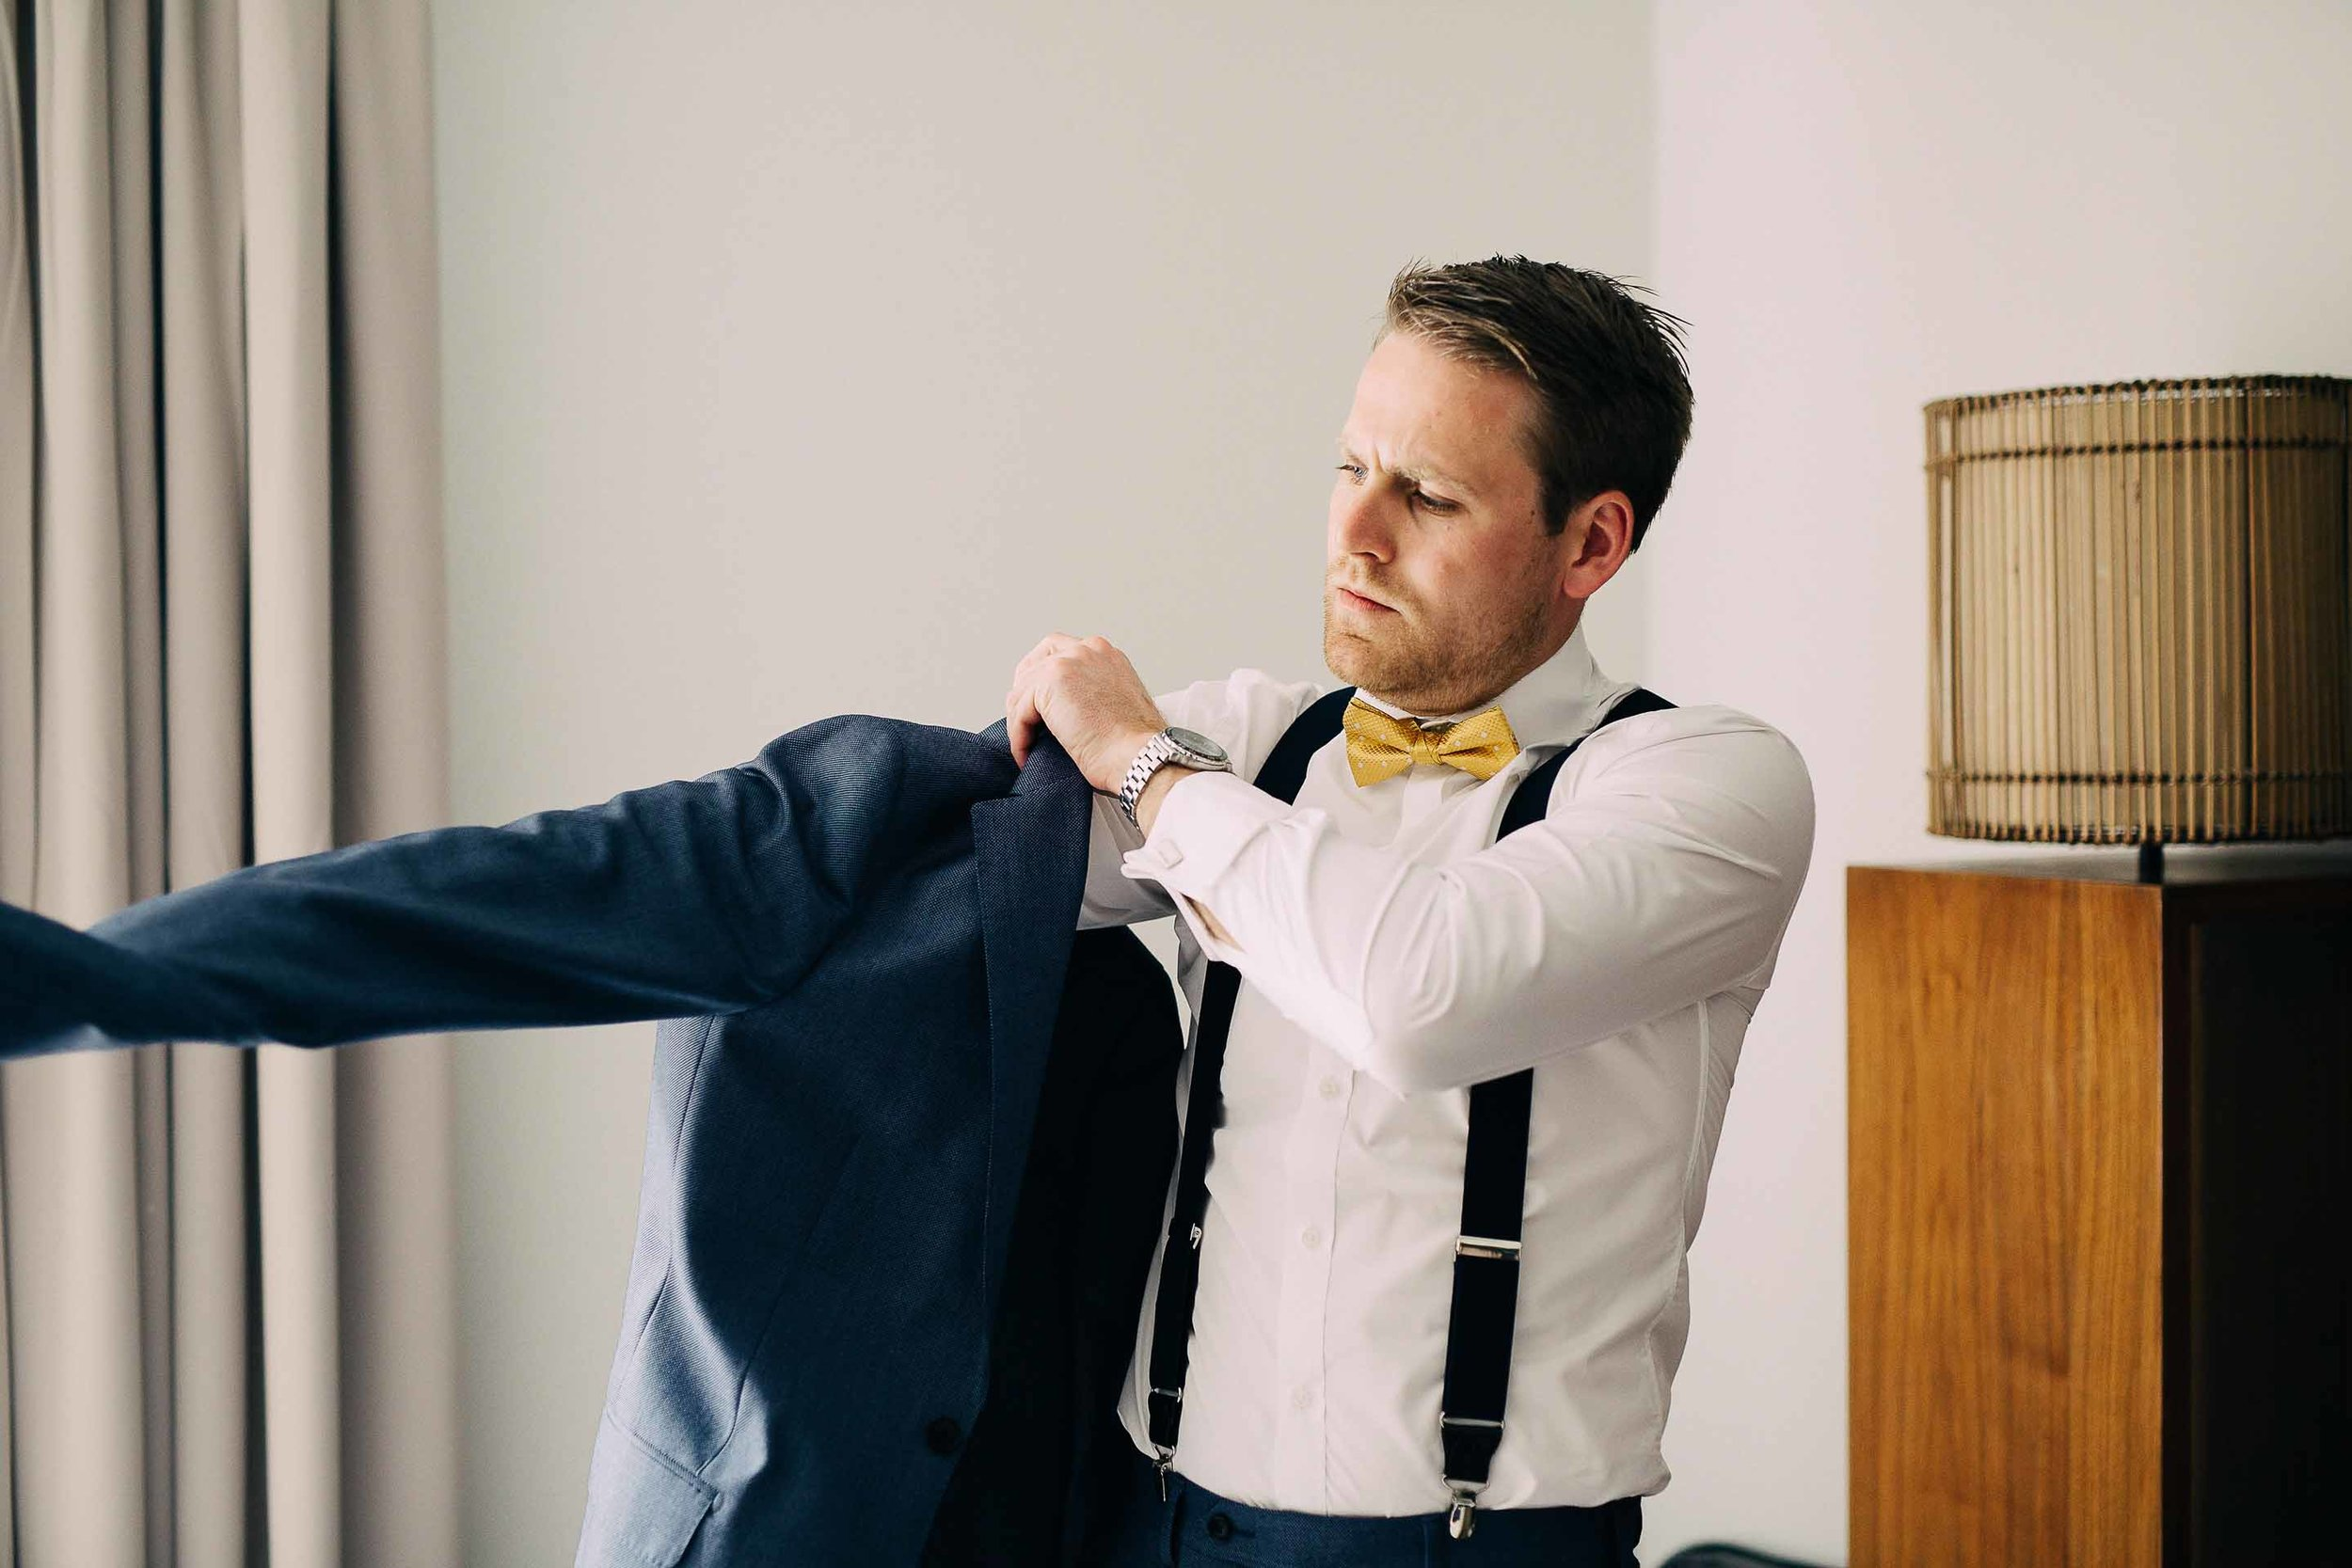 Fiji Groom puts on his suit ready to say I Do.